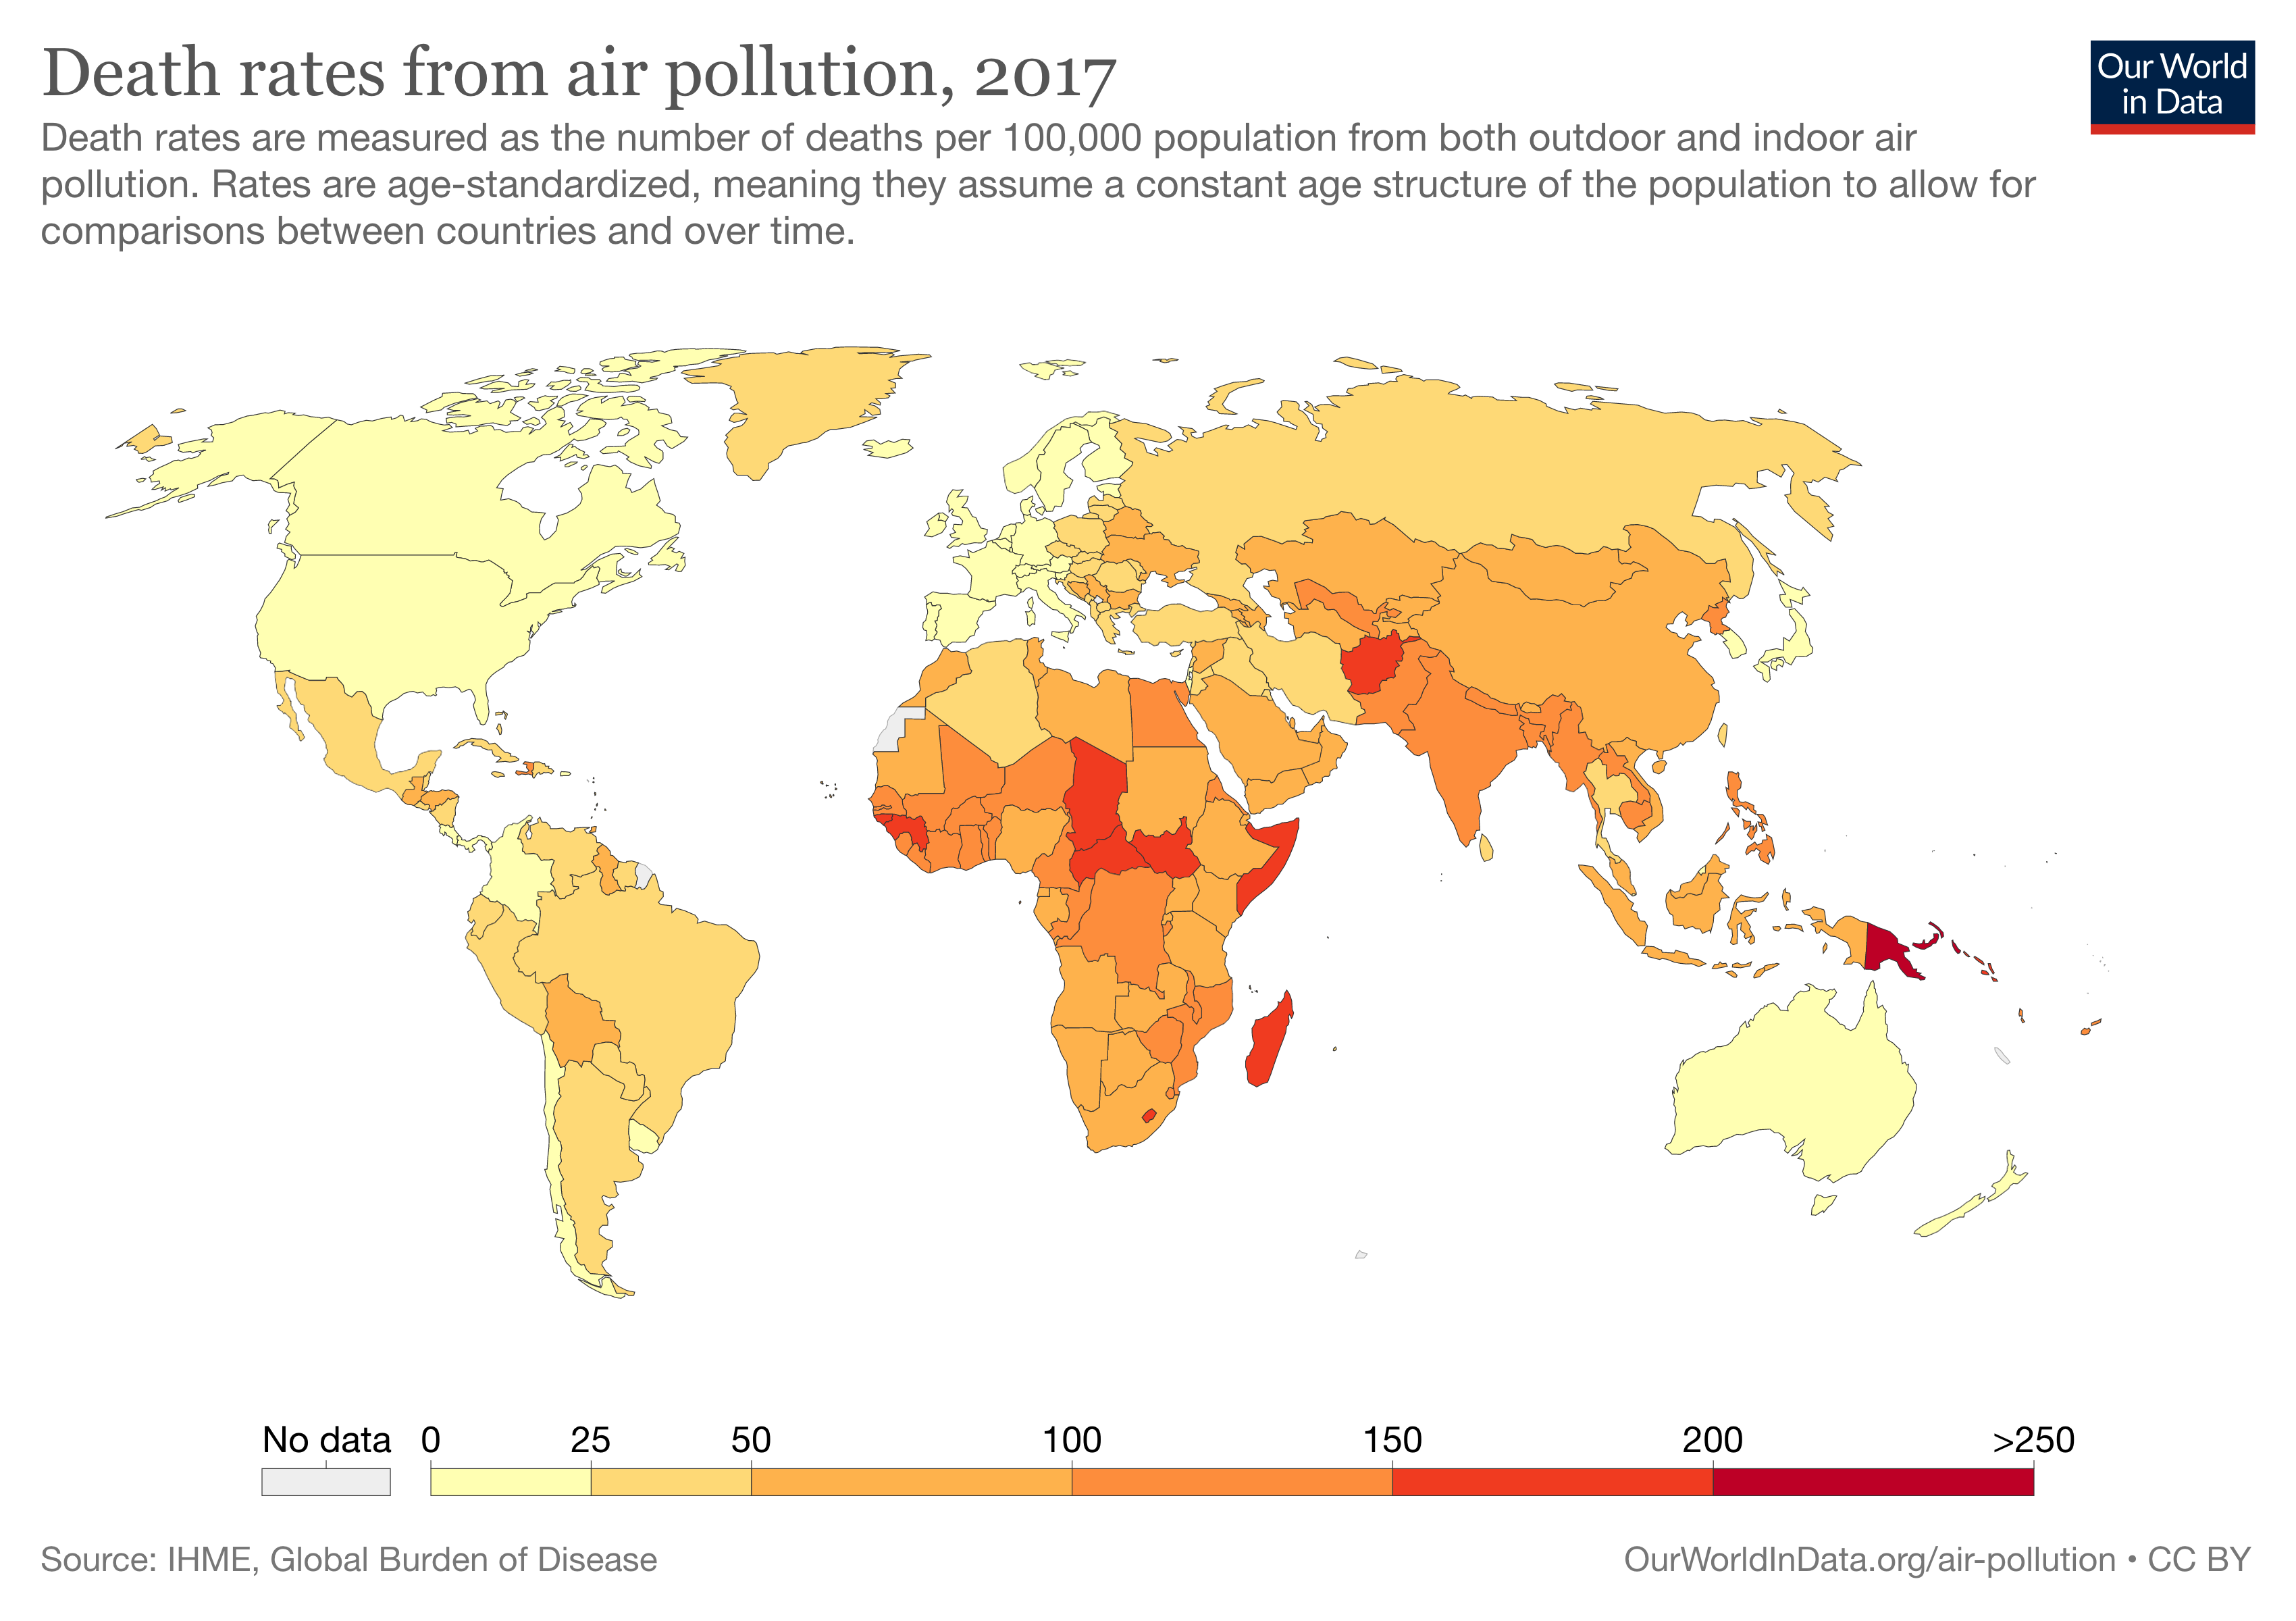 Mortality rates from air pollution around the world